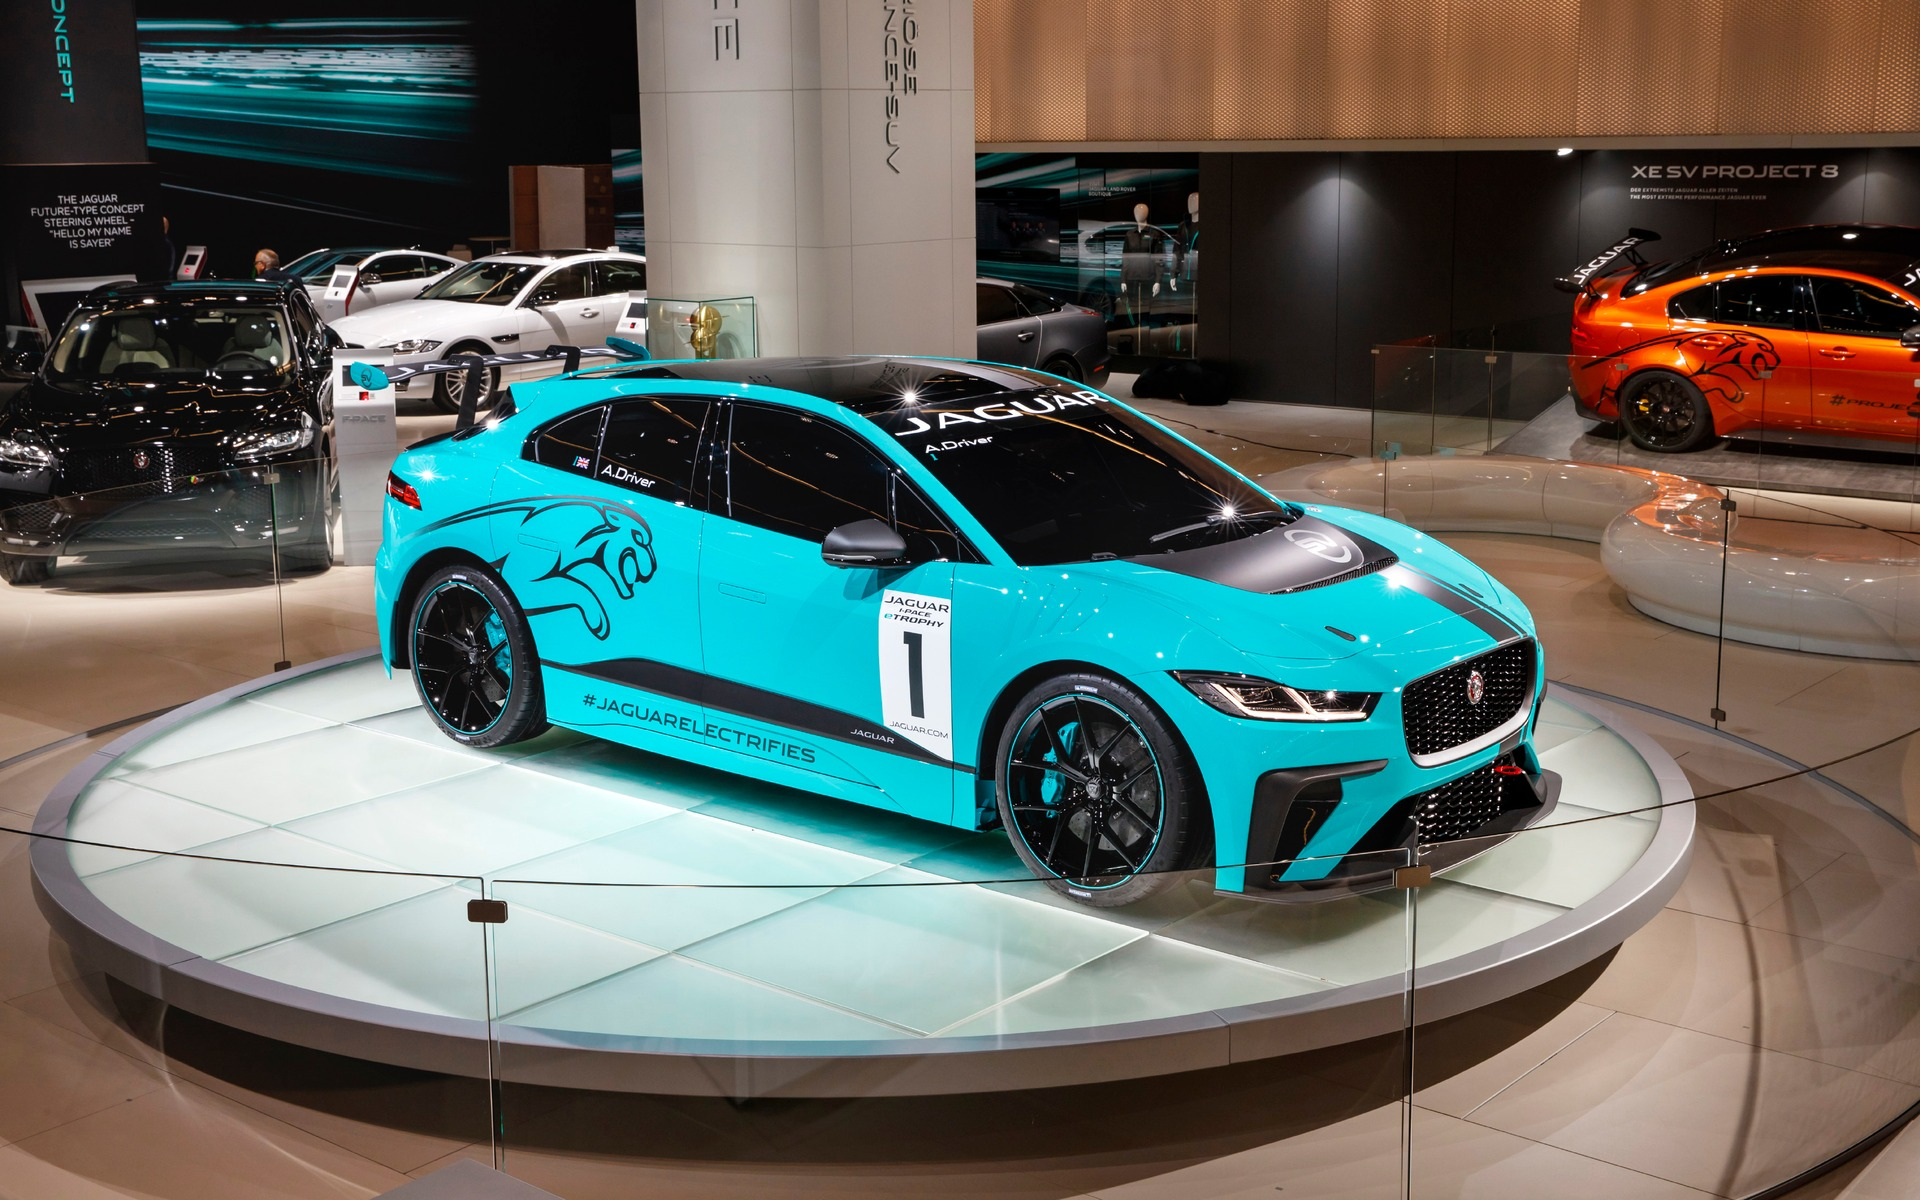 The Jaguar I-PACE eTROPHY